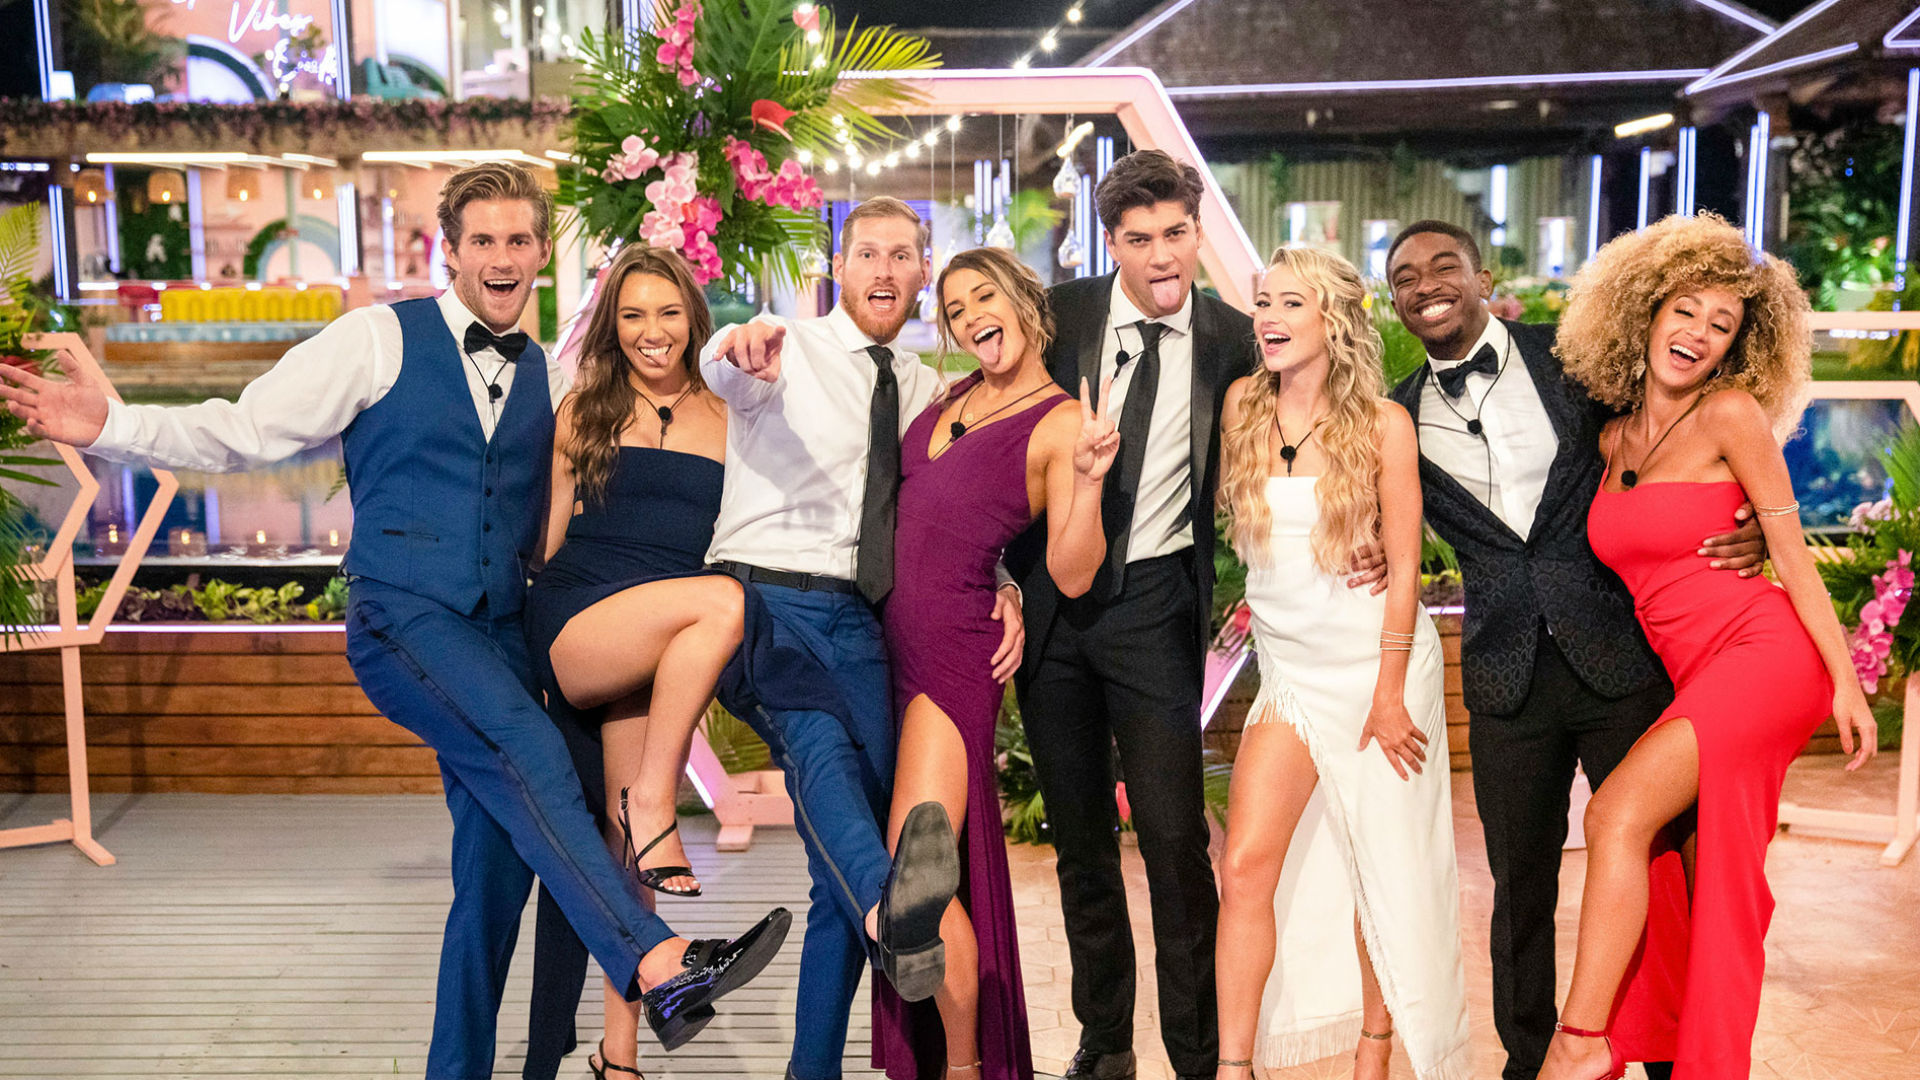 Love Island USA Season 1 couples who is still together and who called it quits.